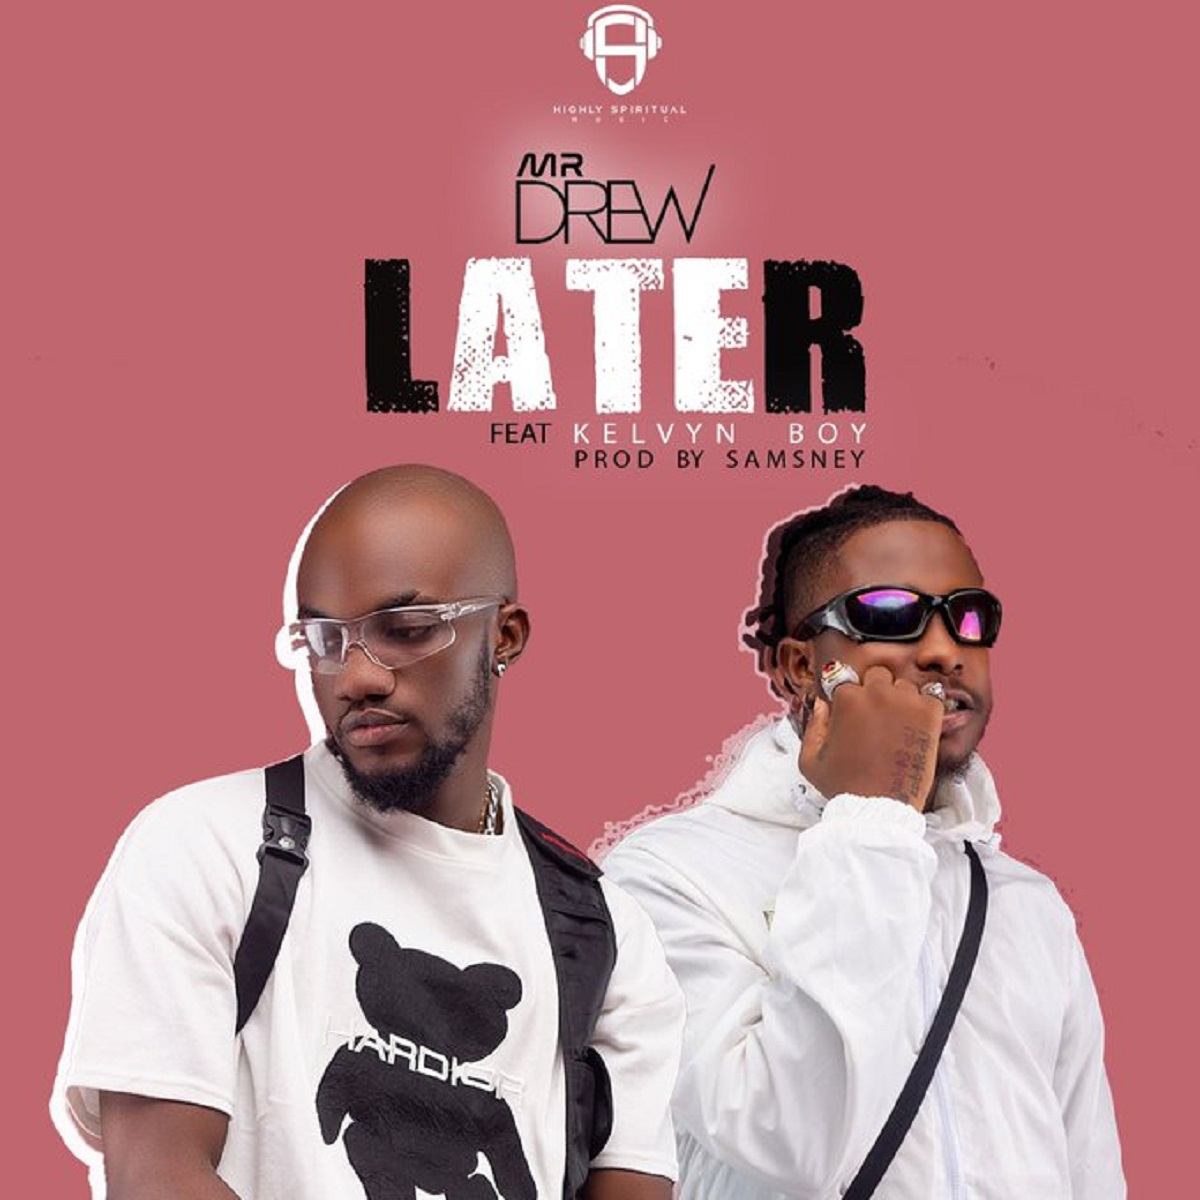 Later by Mr Drew feat. Kelvyn Boy